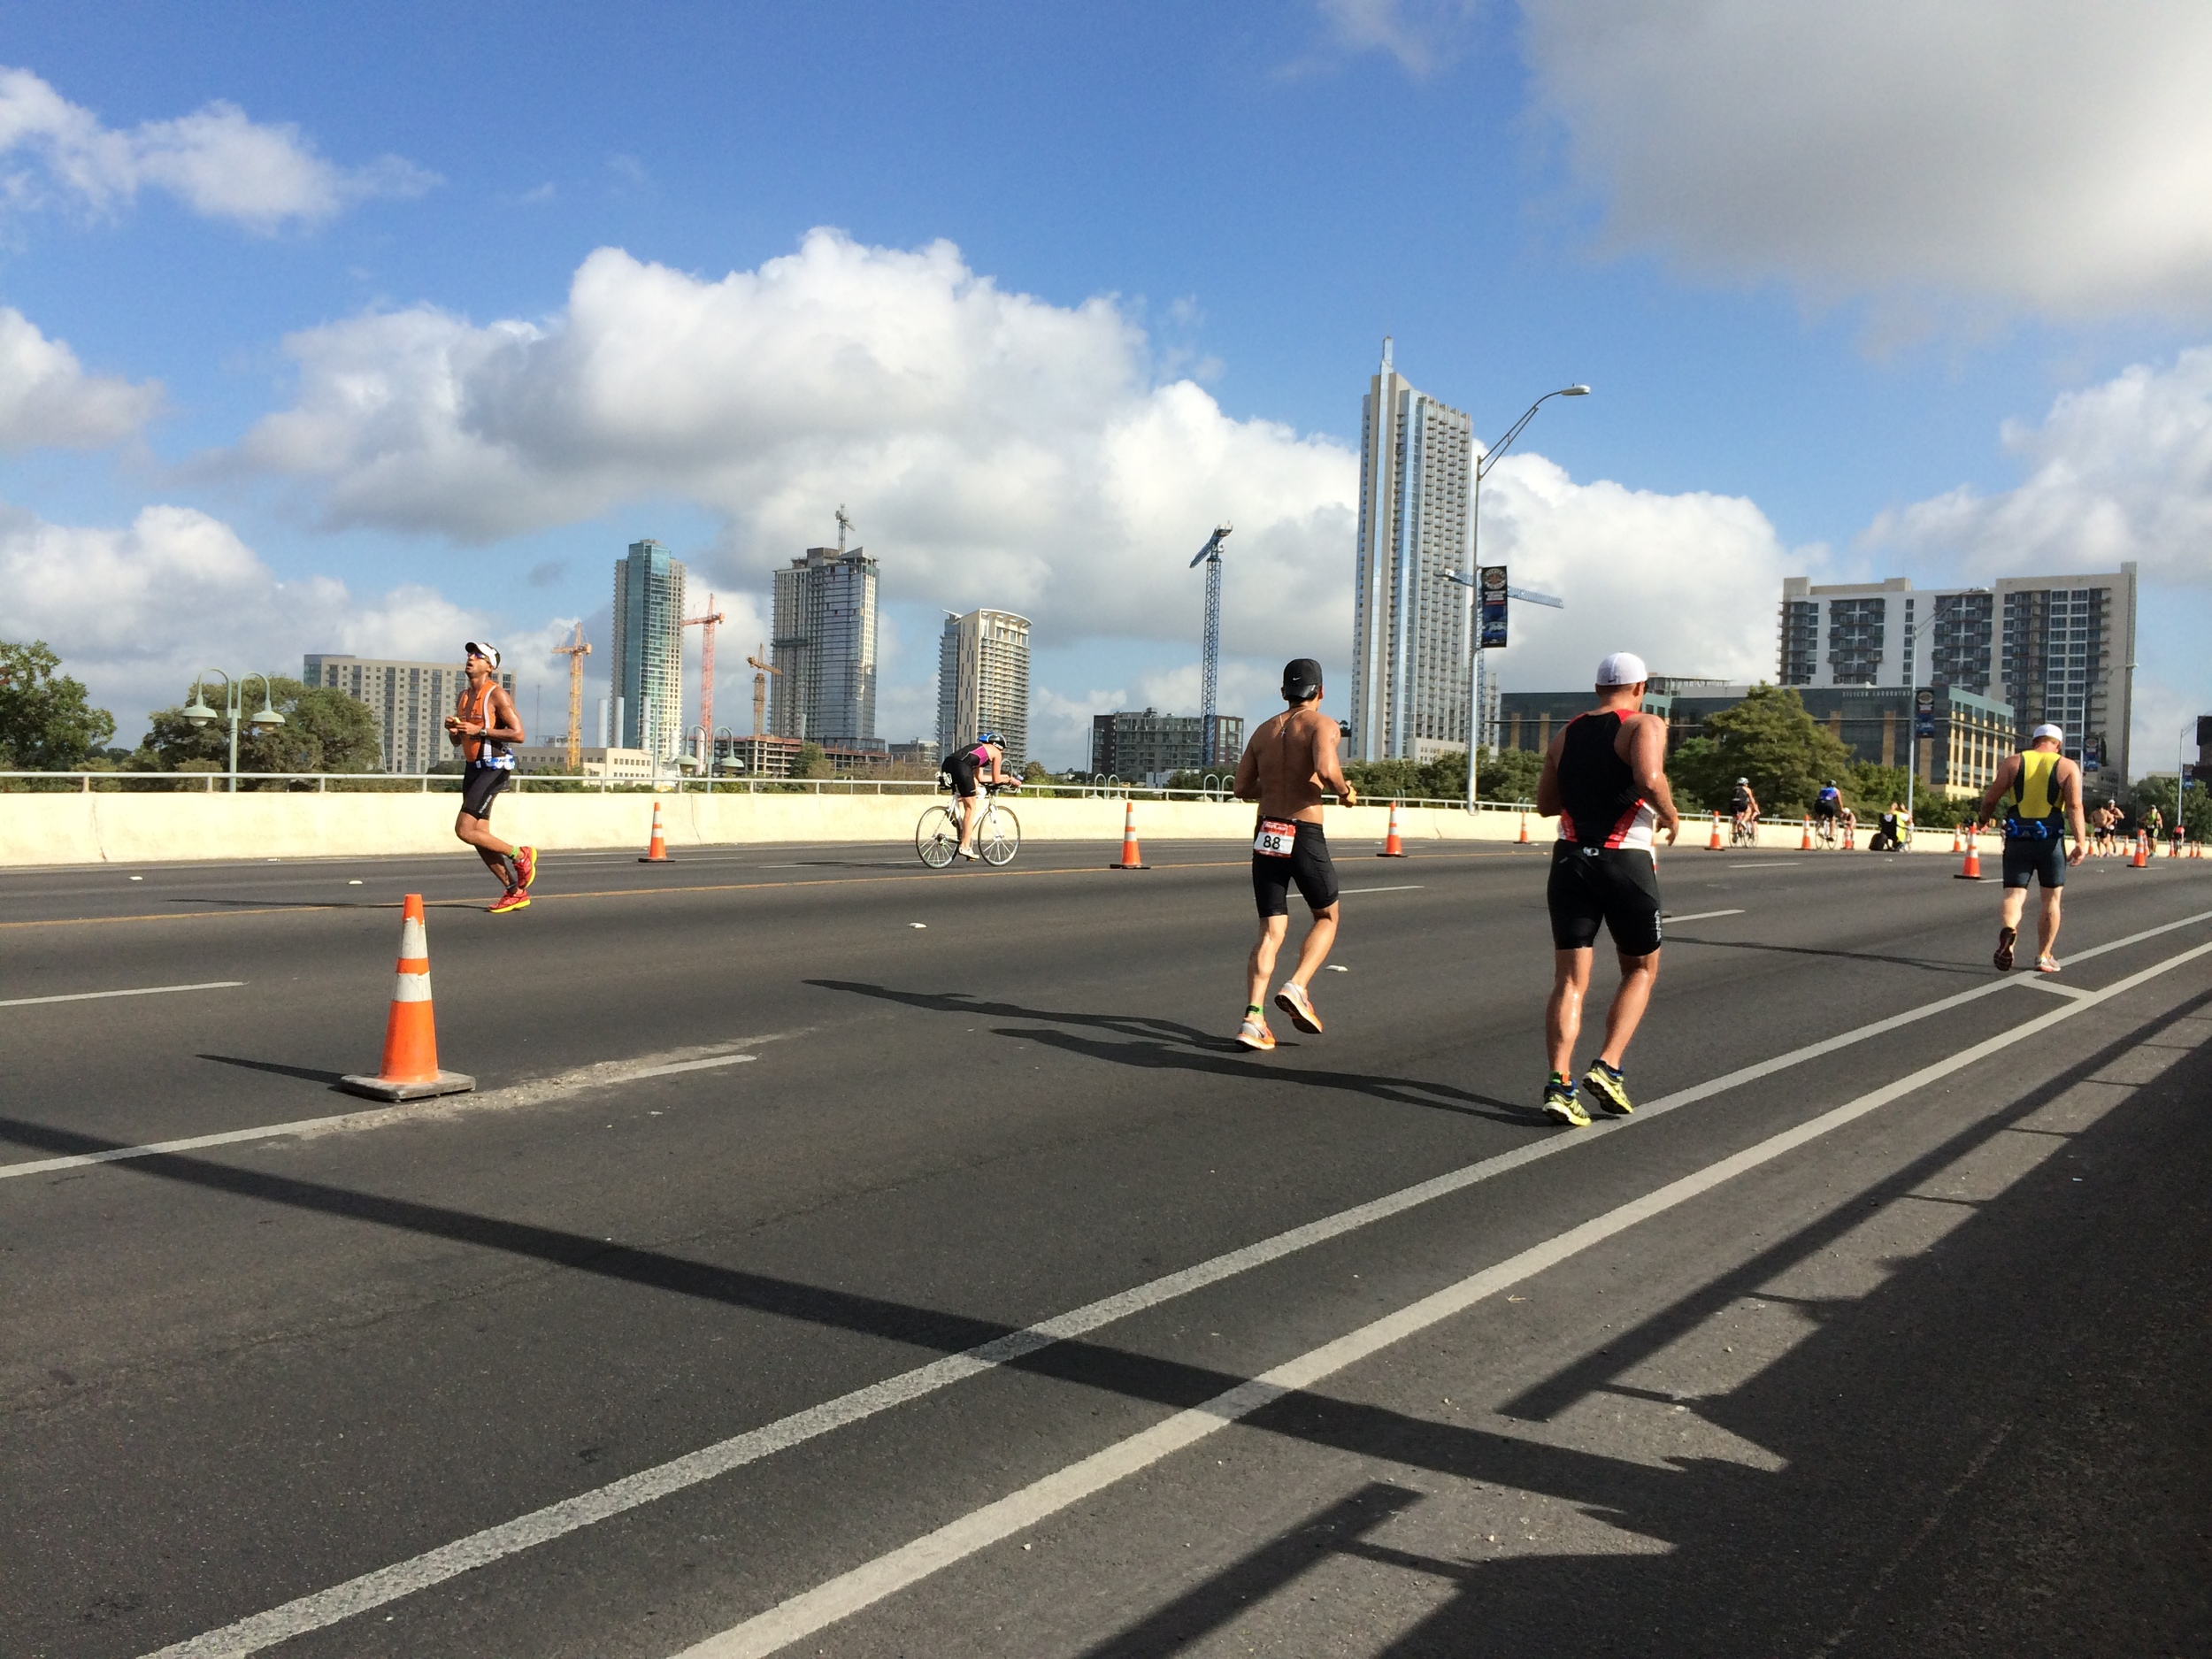 Runners in both directions and bikers at the back.